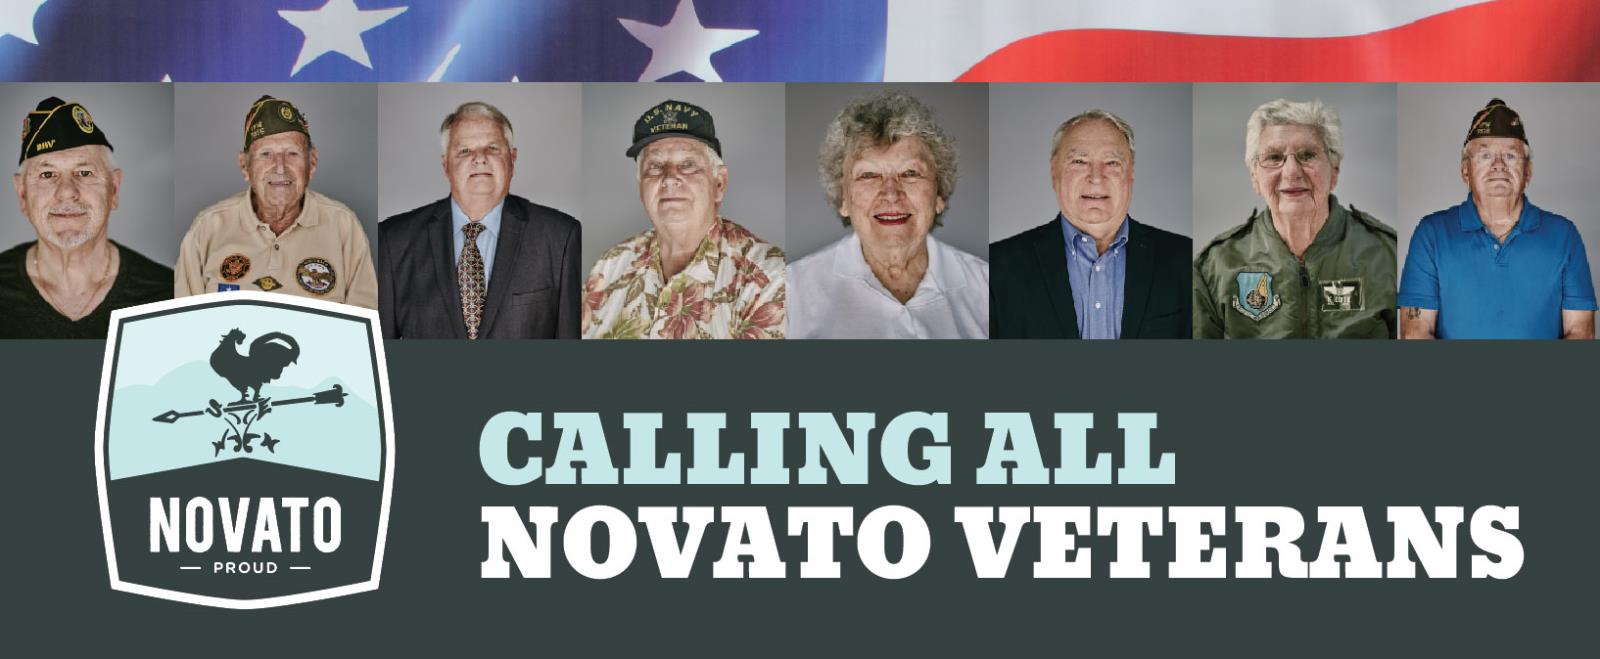 Photo of veterans with Novato Proud logo and the words Calling all Novato Veterans